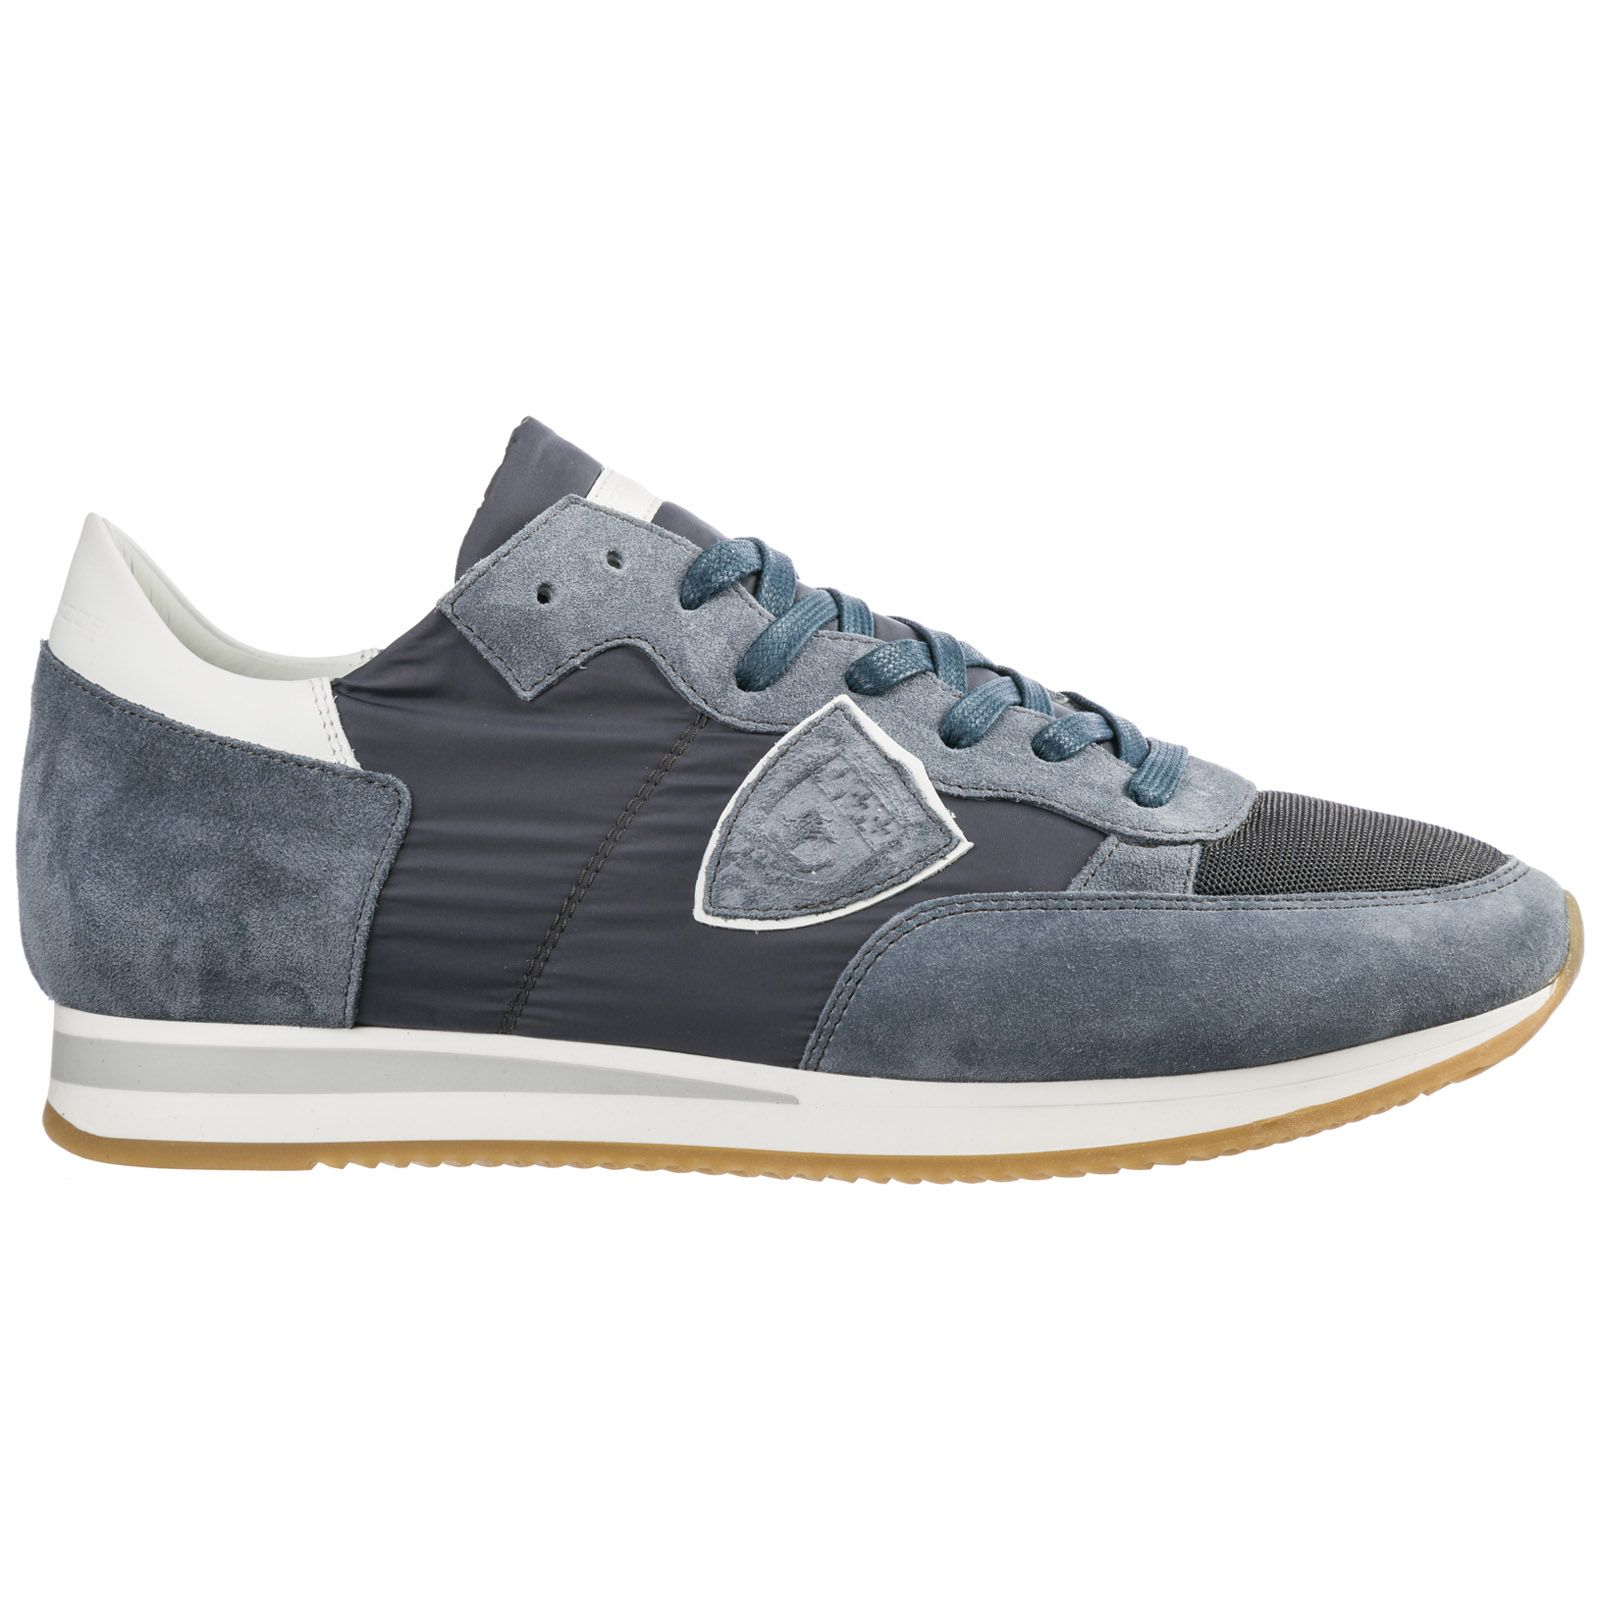 PHILIPPE MODEL MEN'S SHOES SUEDE TRAINERS SNEAKERS TROPEZ